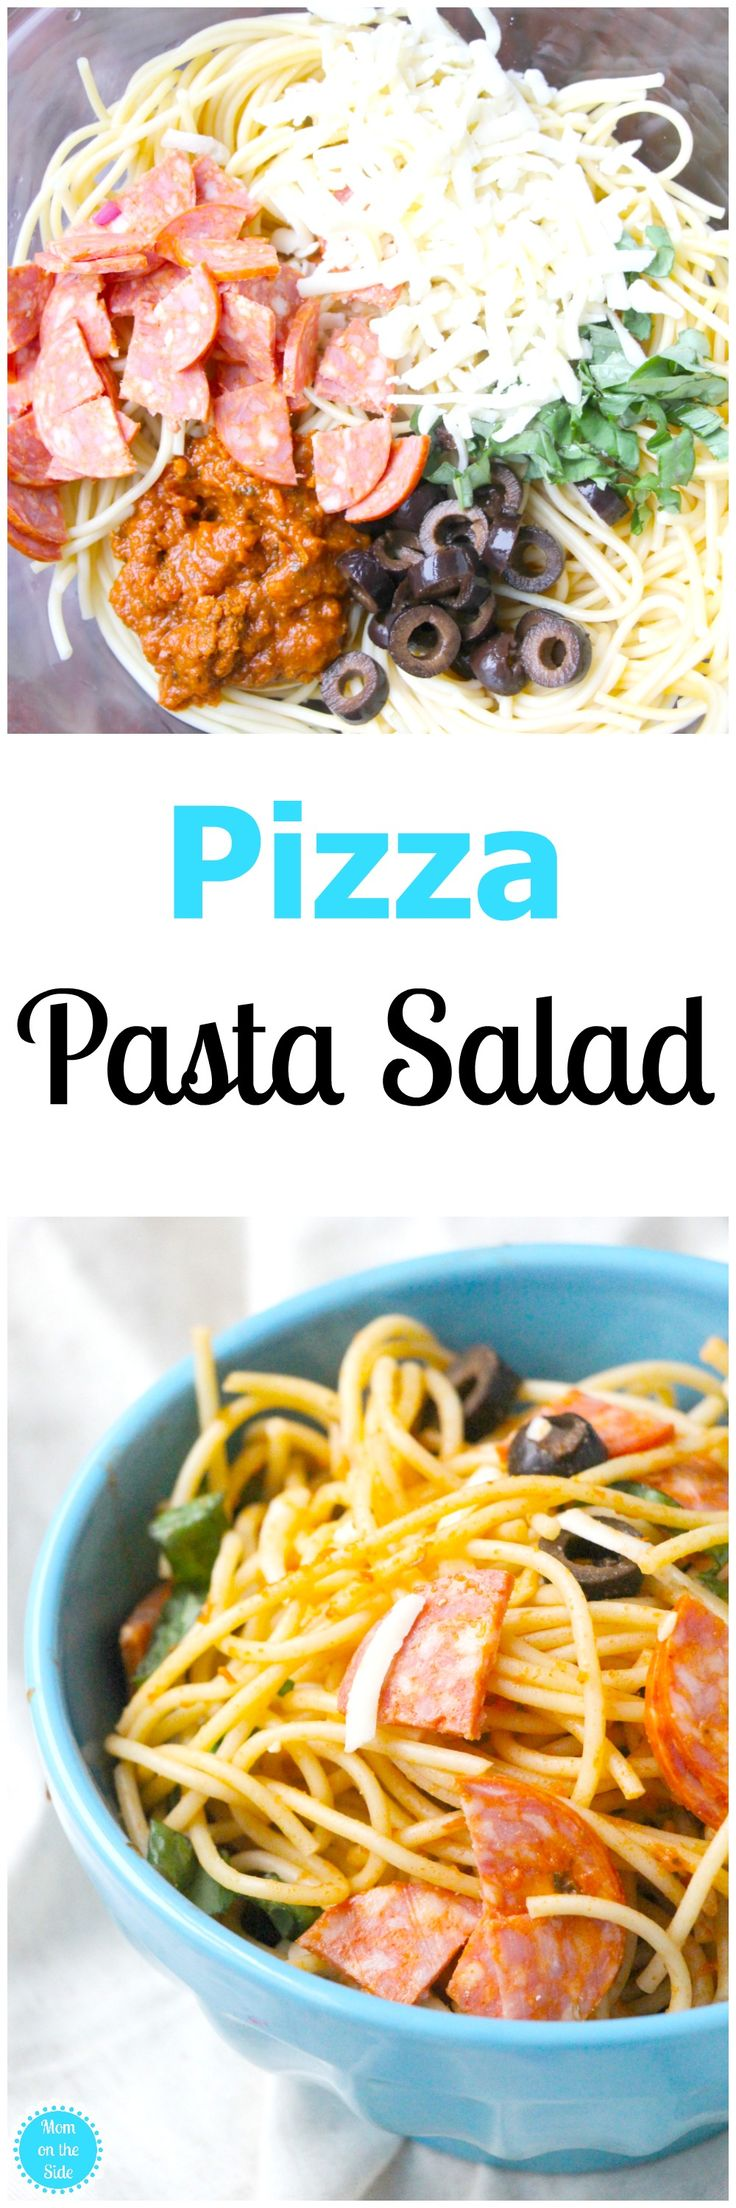 Serve this Pizza Pasta Salad cold or hot at your next picnic or bbq! Six simple ingredients for a deliciously easy pasta salad you'll want more of! via @momontheside